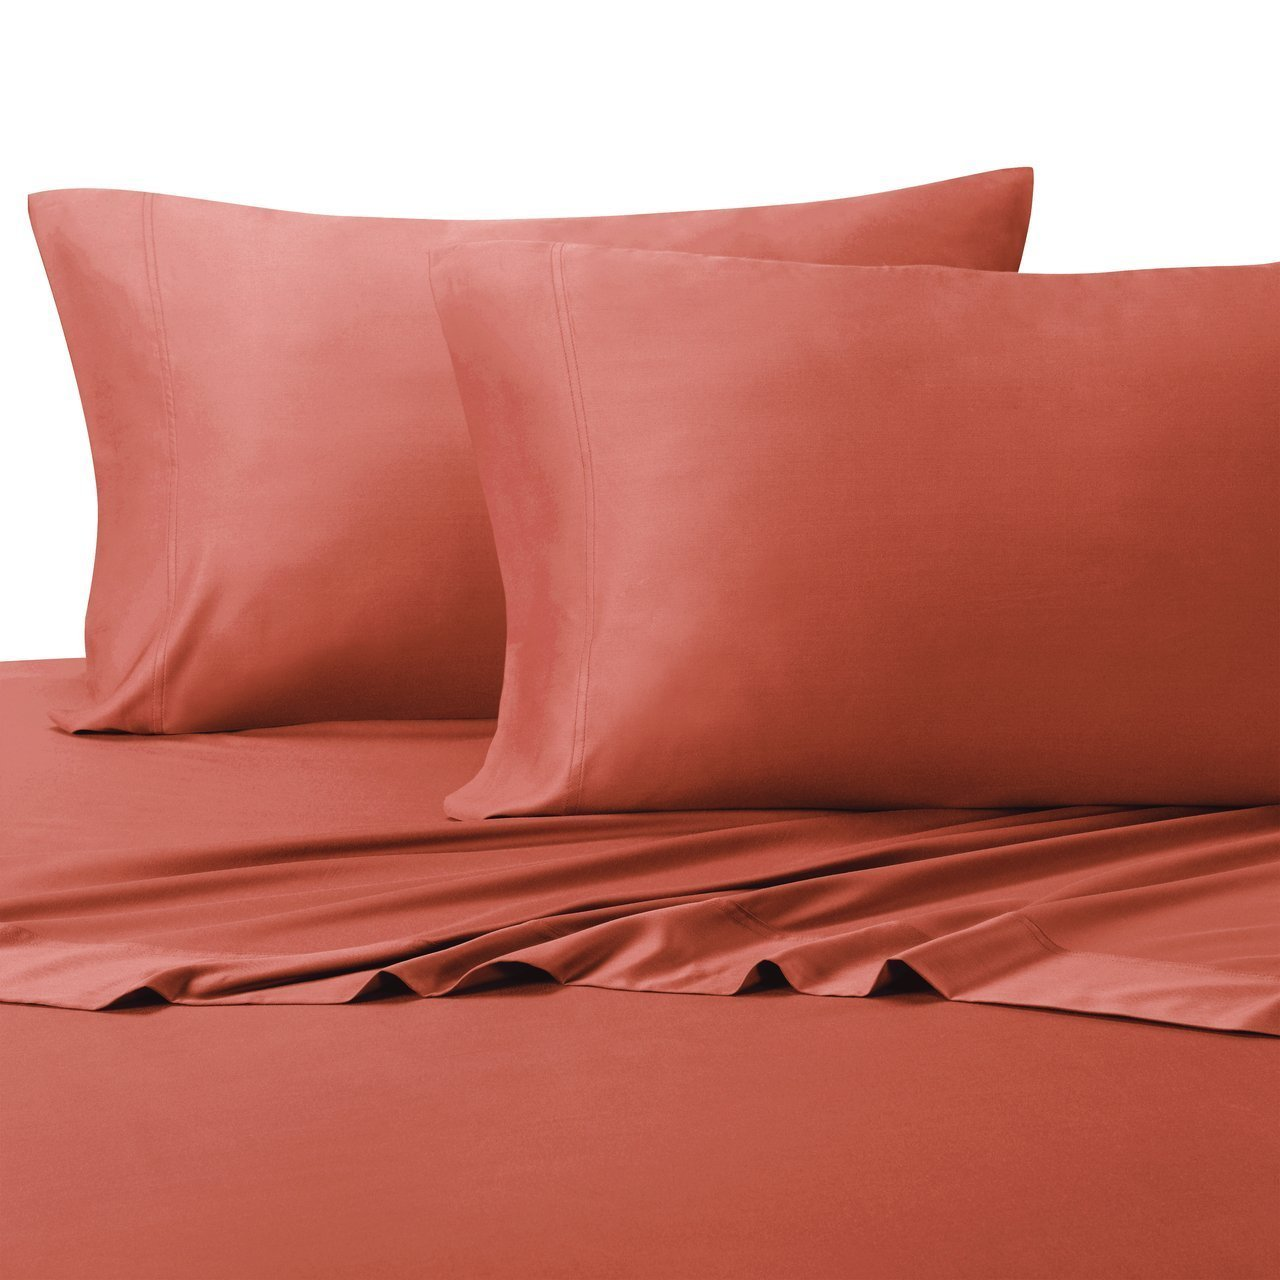 "Ultra Soft & Exquisitely Silky 100% Viscose from Bamboo Sheet Set, Hypo-Allergenic, 18"" Pockets, Coral, 4 Piece King Size Deep Pocket Sheet Set, $100"